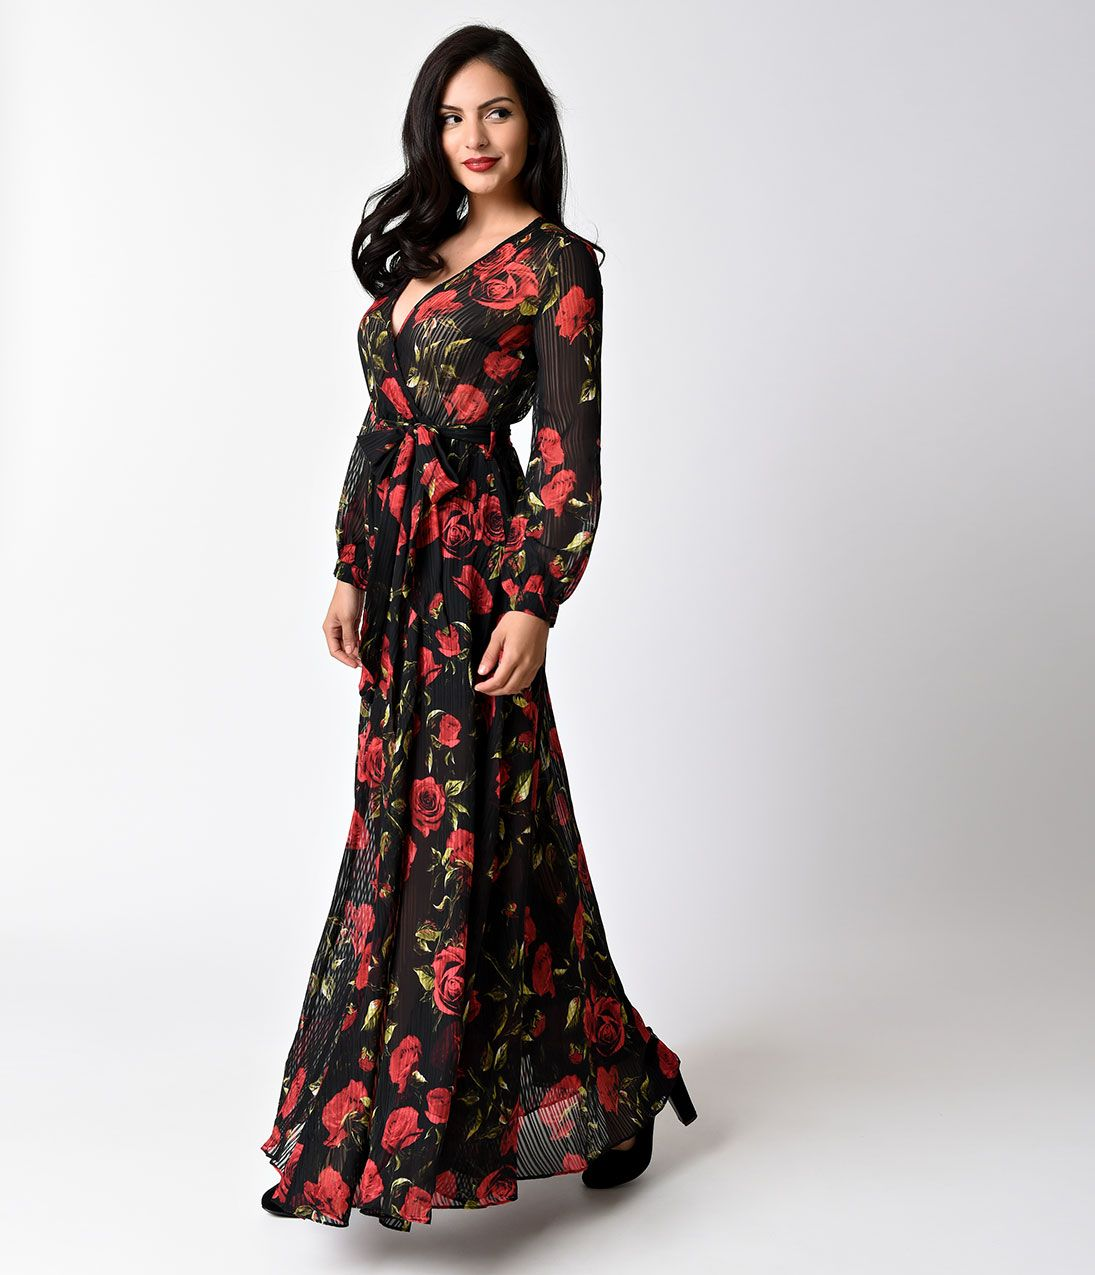 S style black u red floral print long sleeve maxi dress my